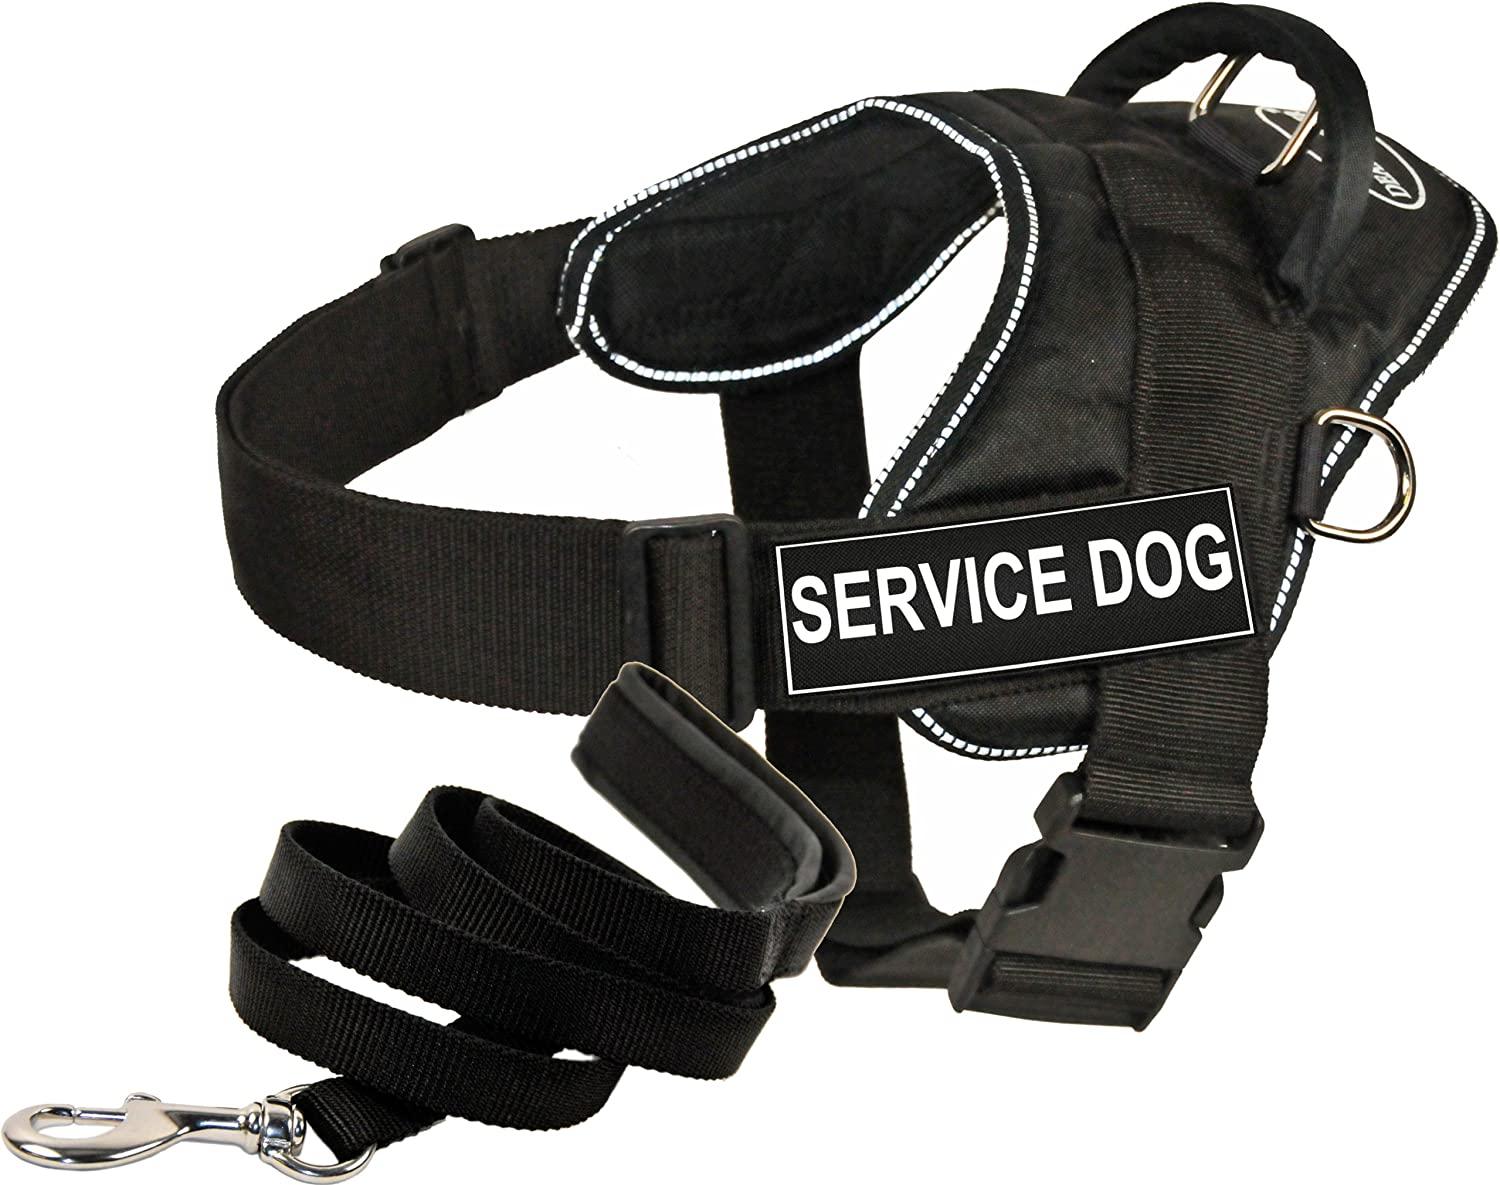 Dean and Tyler Bundle  One DT Fun Works  Harness, Service Dog, Reflective, Medium + One Padded Puppy  Leash, 6 FT Stainless Steel Snap  Black